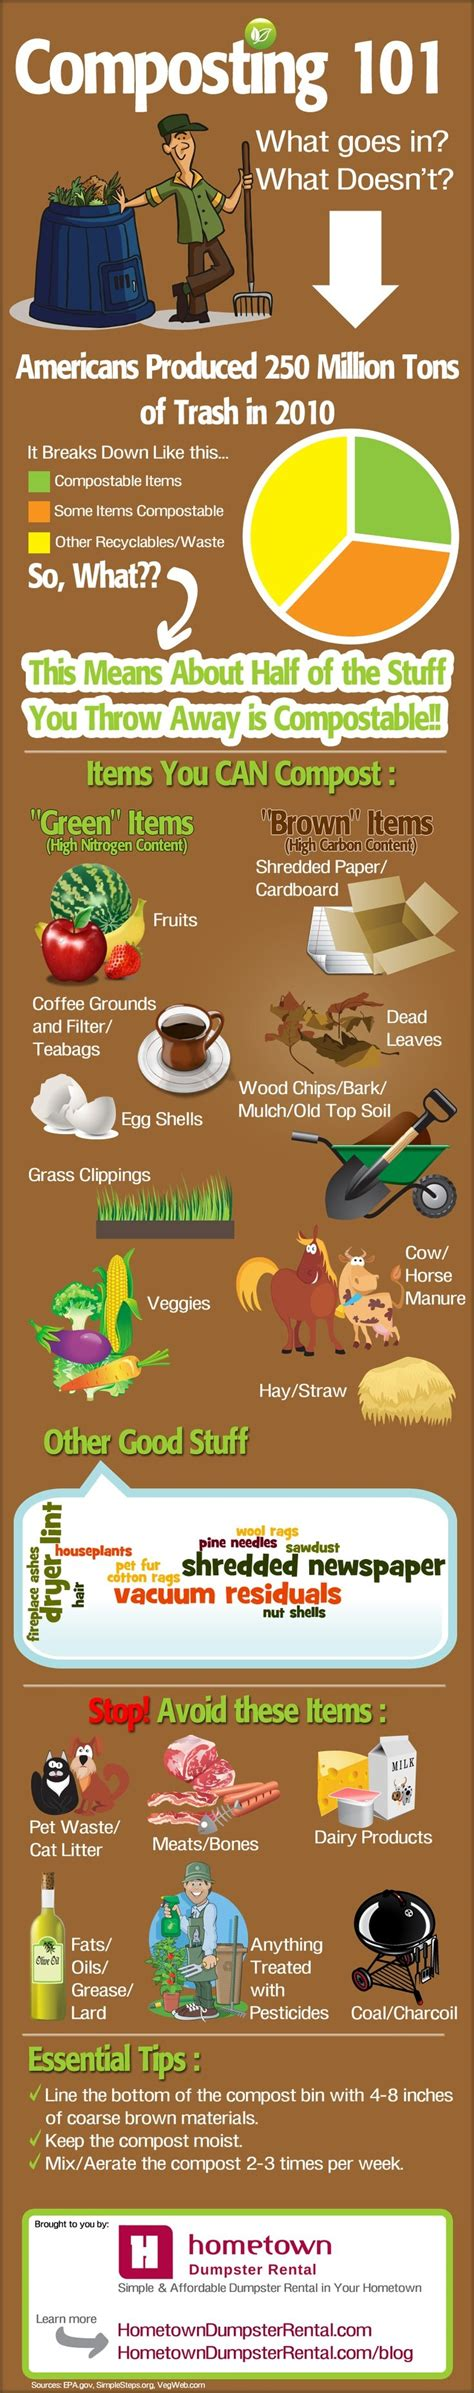 backyard composting guide what to compost composting 101 what to compost